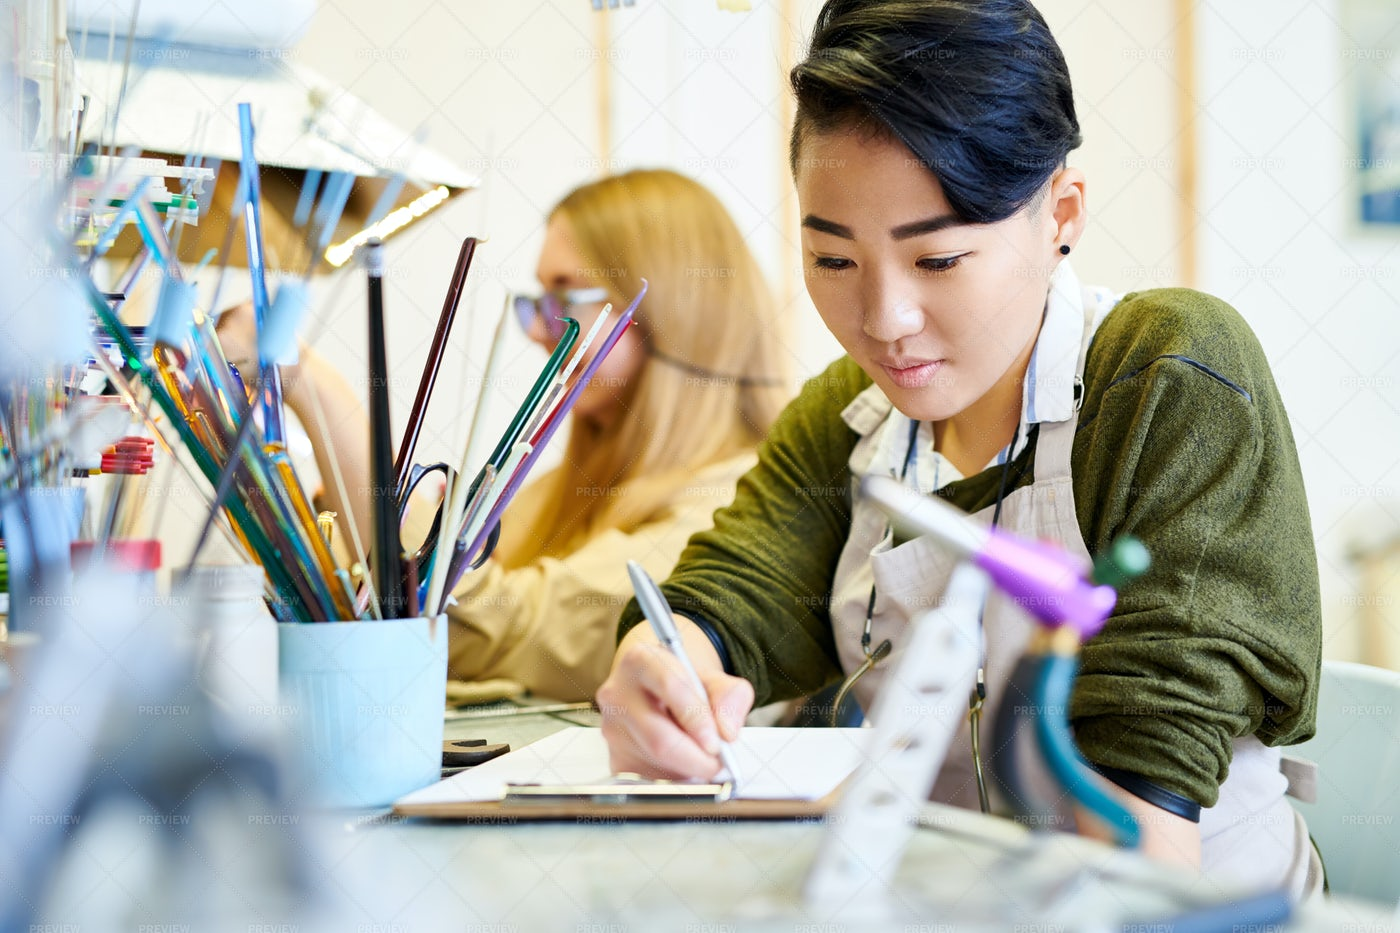 Creative Woman Drawing In Workshop: Stock Photos